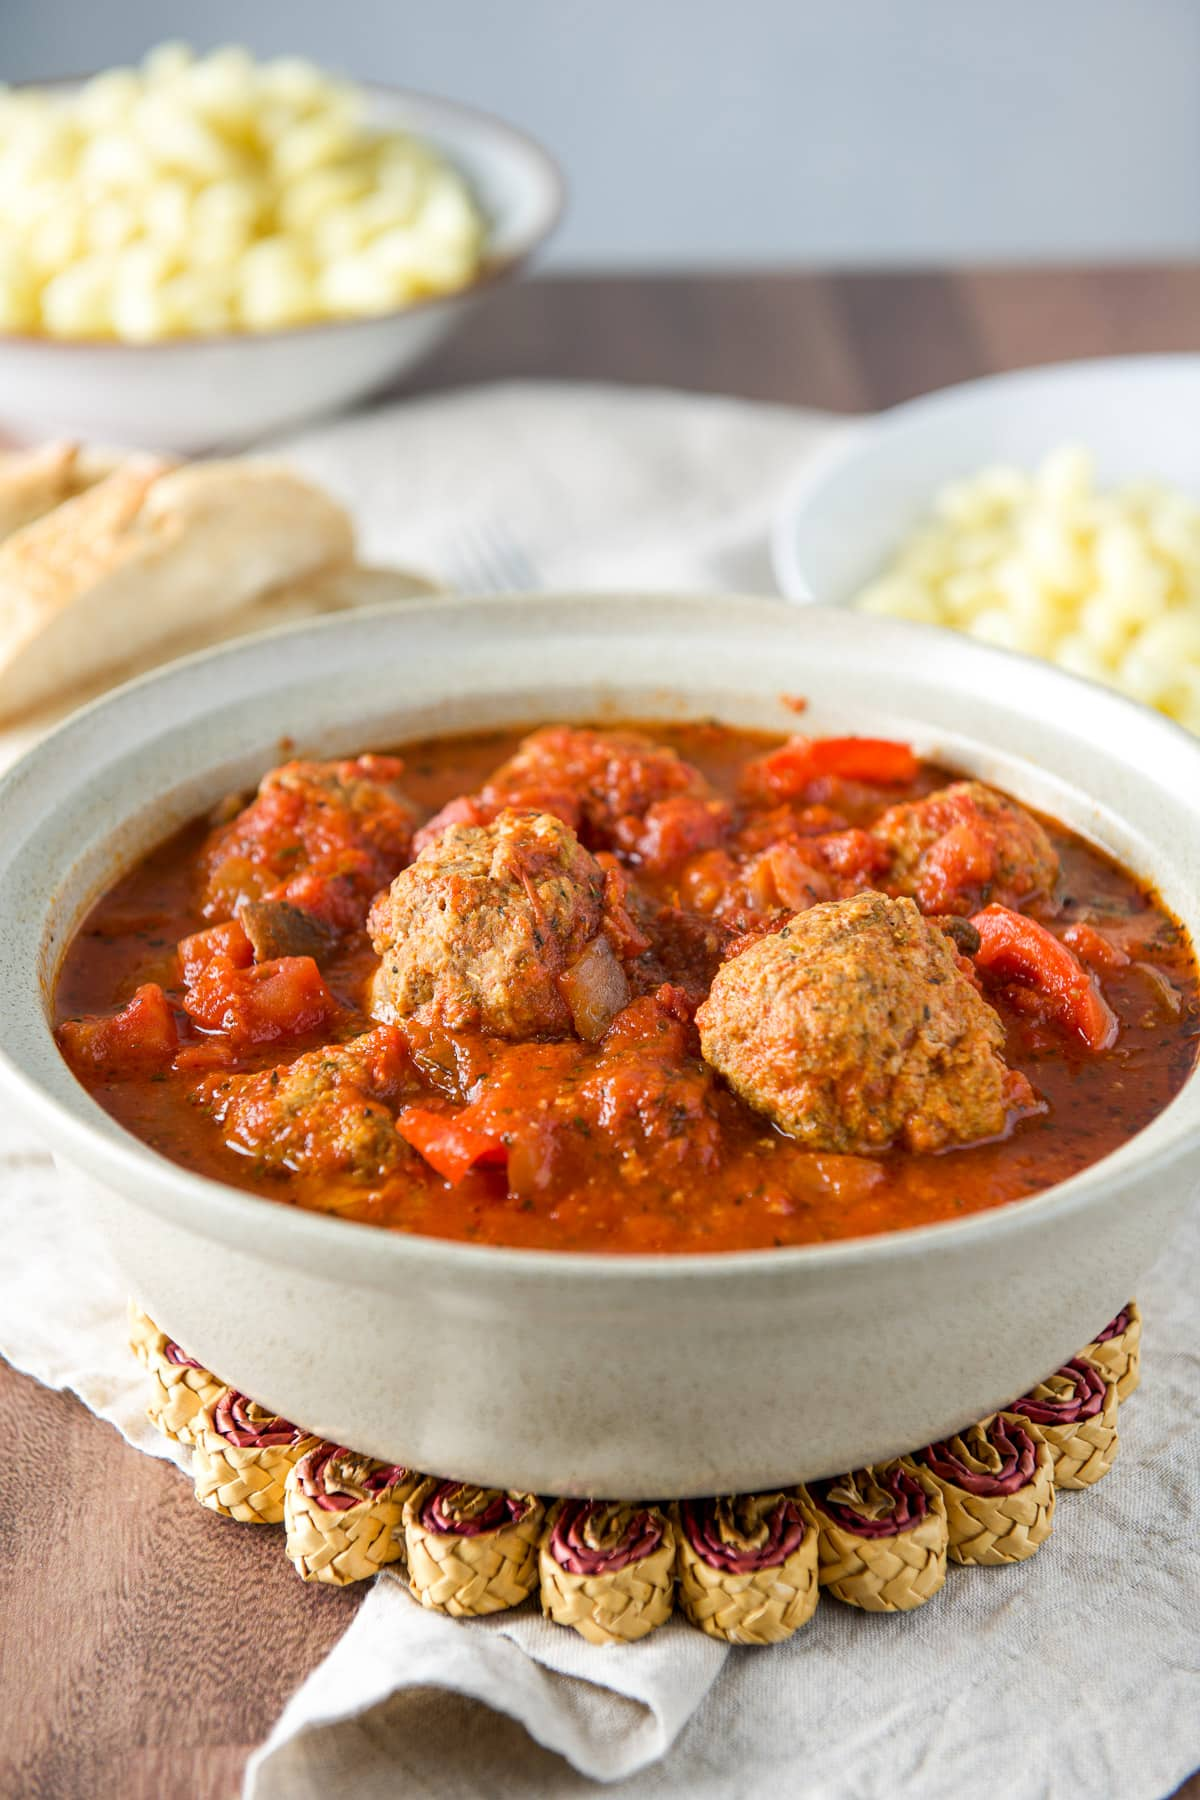 A grey bowl with sauce and meatballs with pasta and bread behind